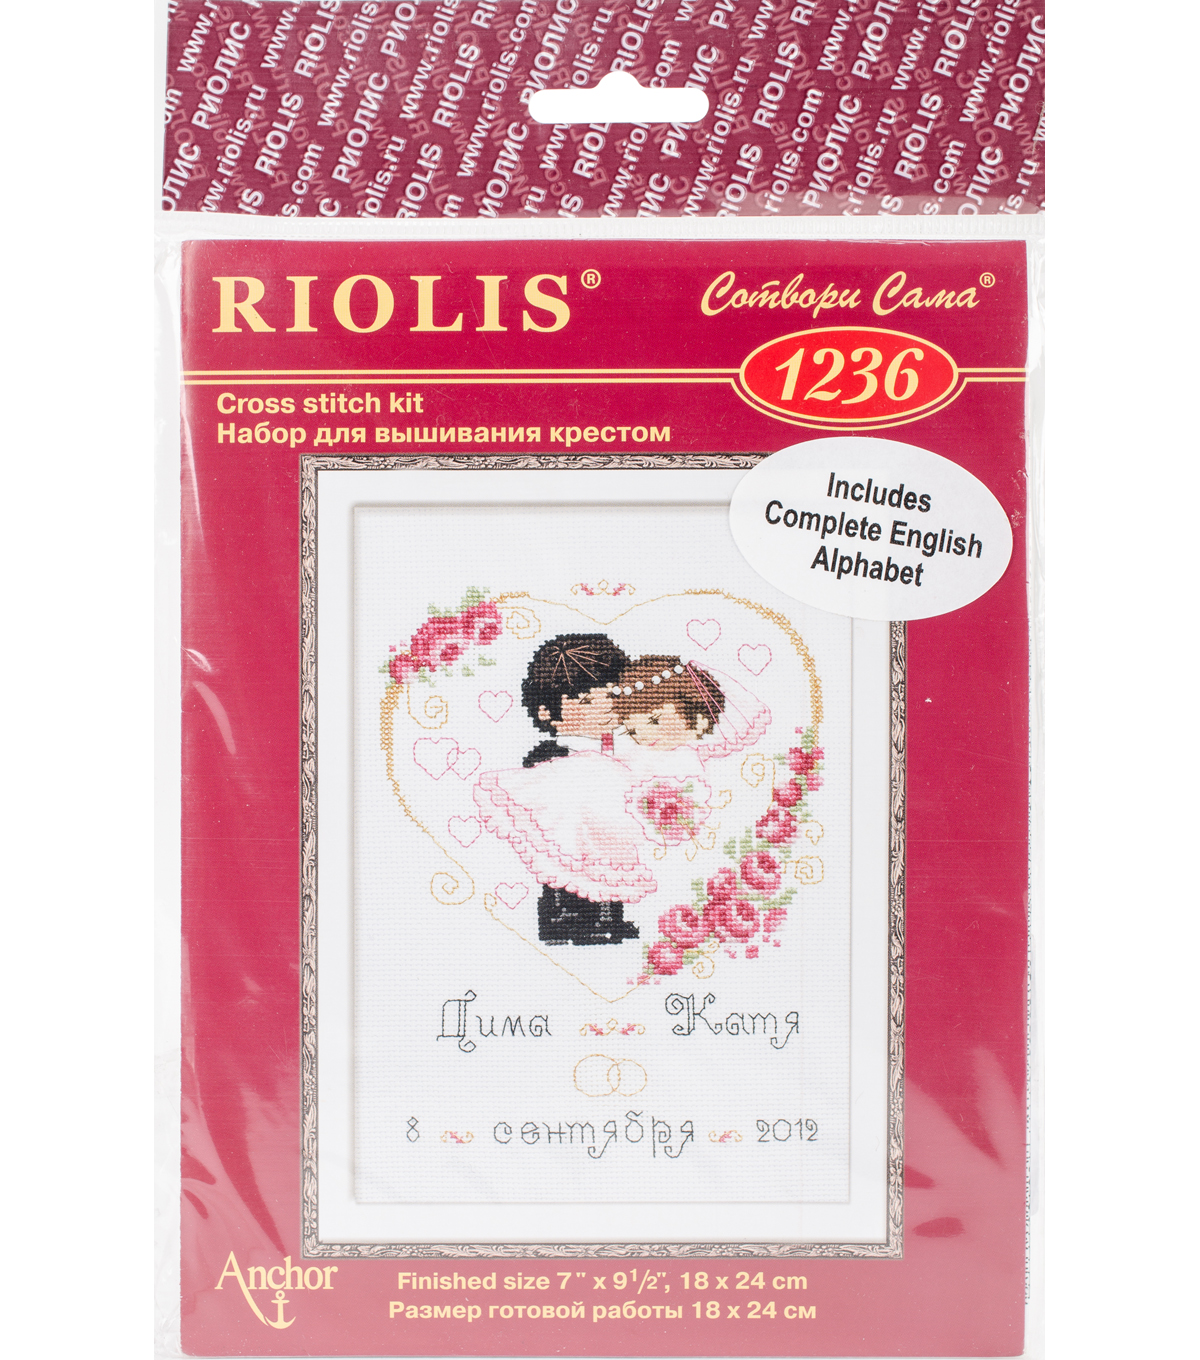 RIOLIS Combopu Cama 7\u0027\u0027x9.5\u0027\u0027 Counted Cross Stitch Kit-Wedding Metric